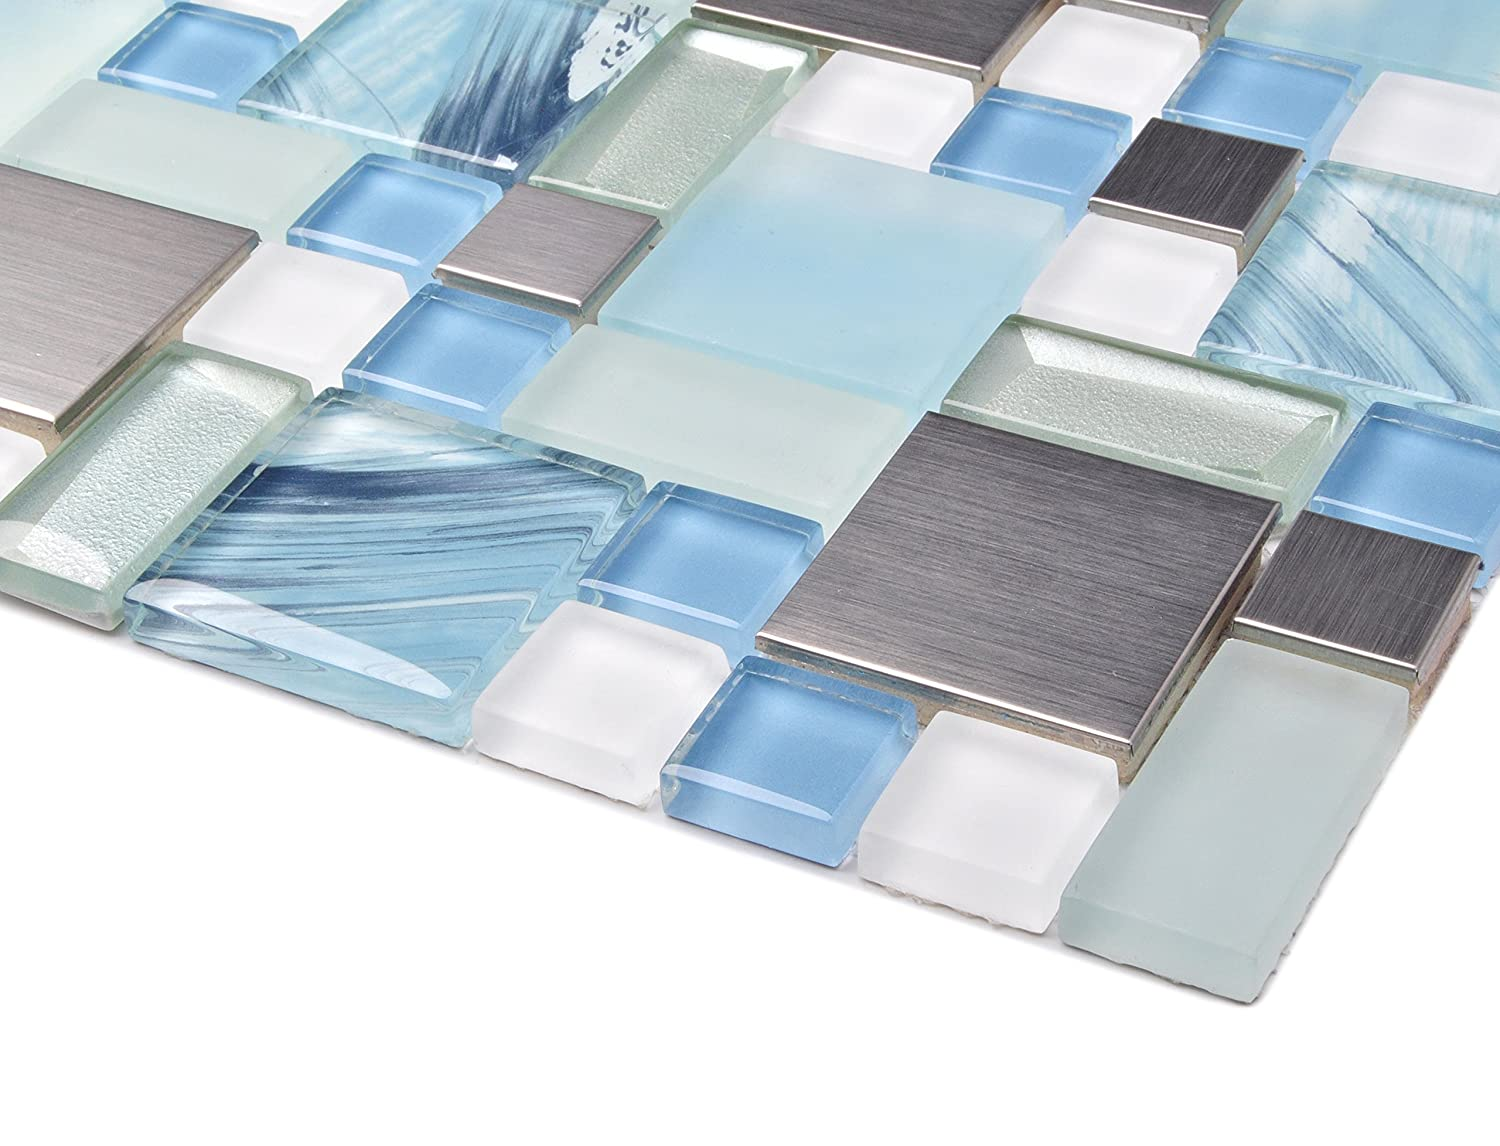 Sea Blue Green Glass Stainless Steel Tile White Kitchen Bath ...